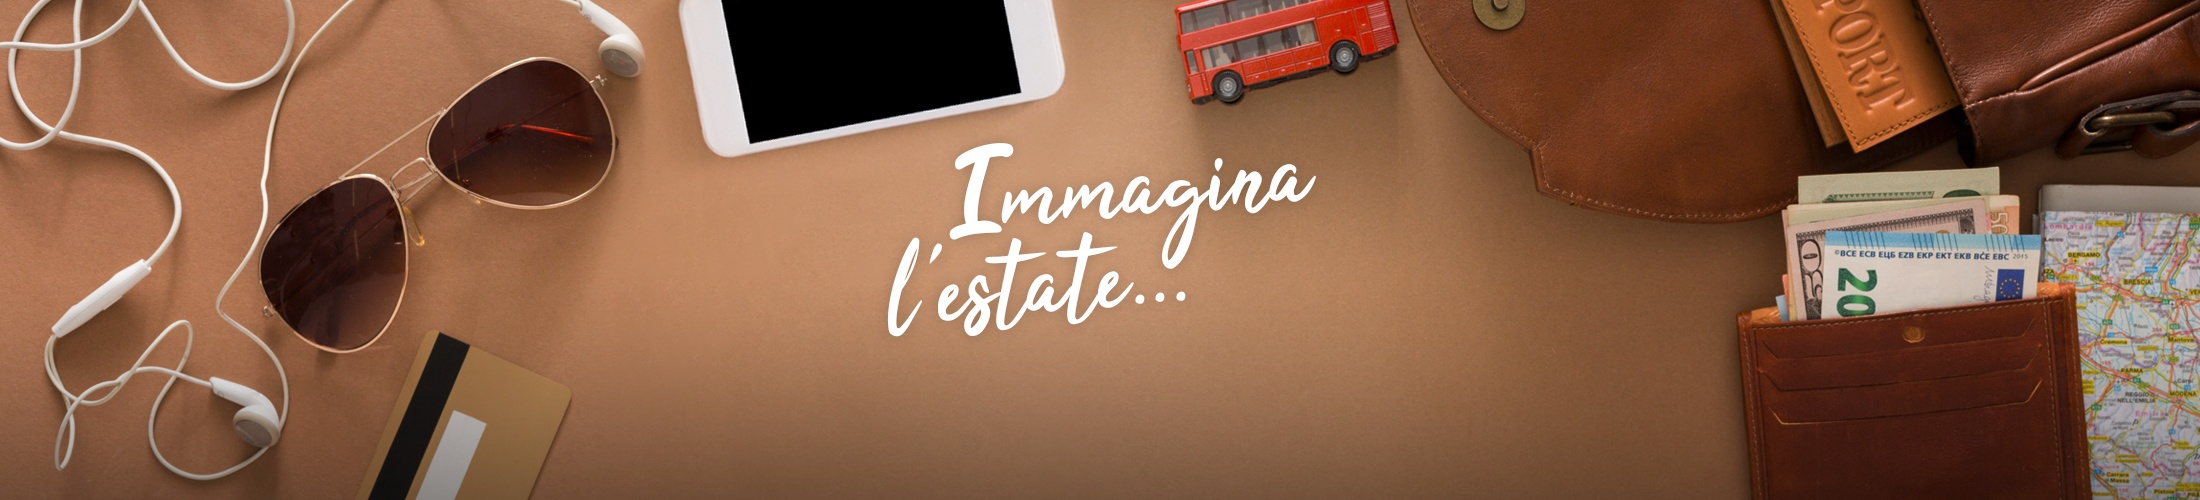 Immagina l'estate con Audible!